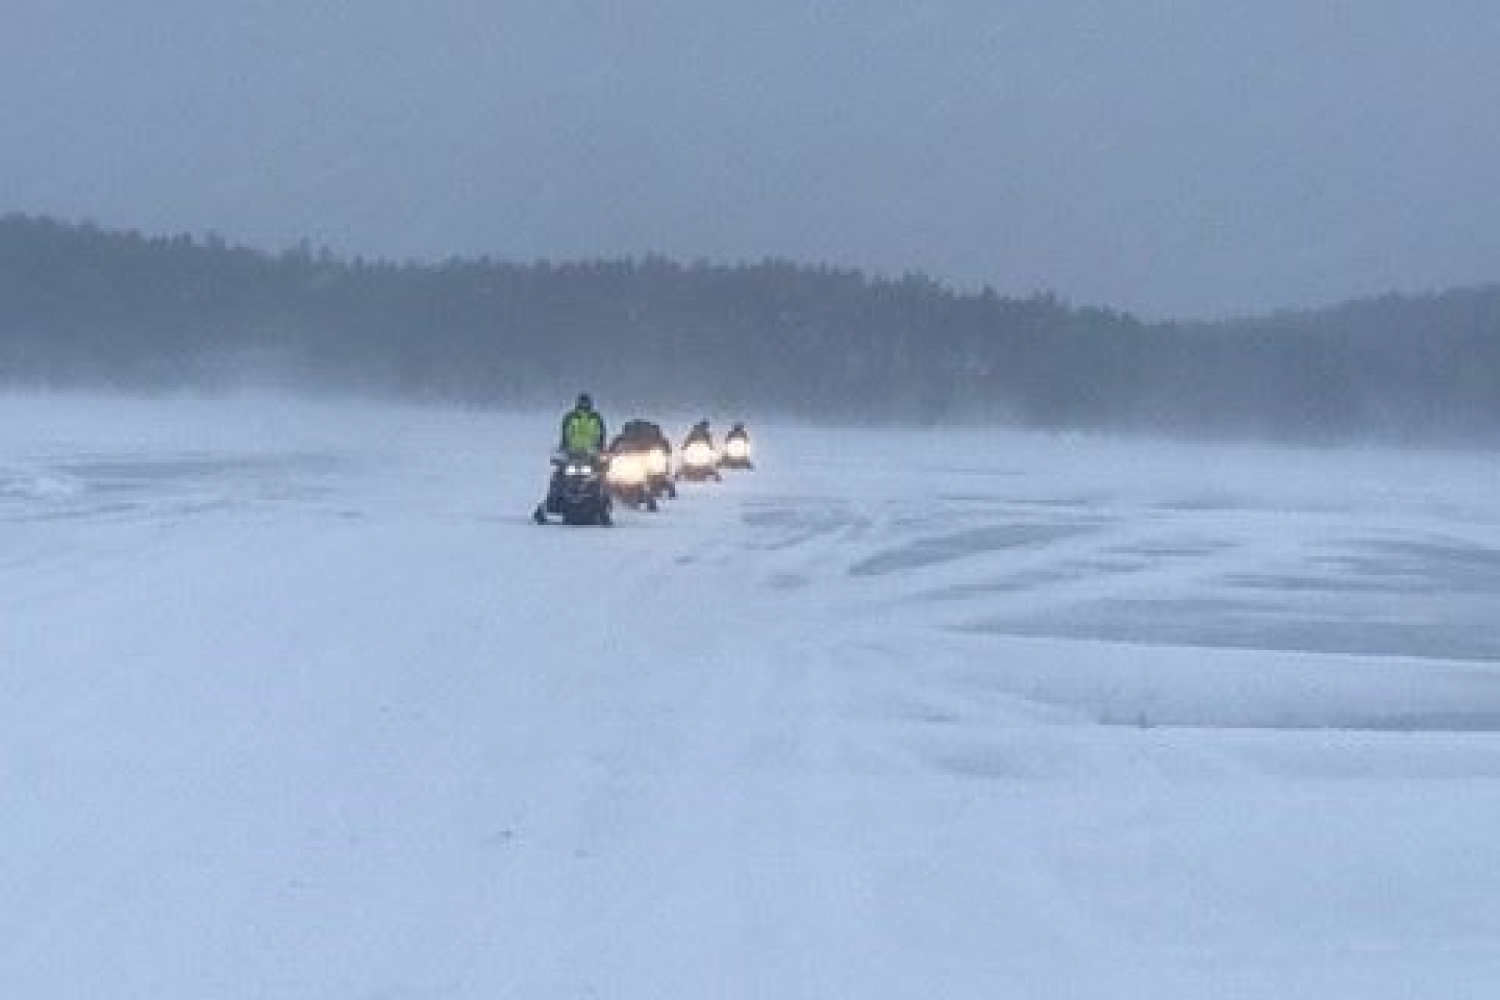 snowmobiles driving in the track